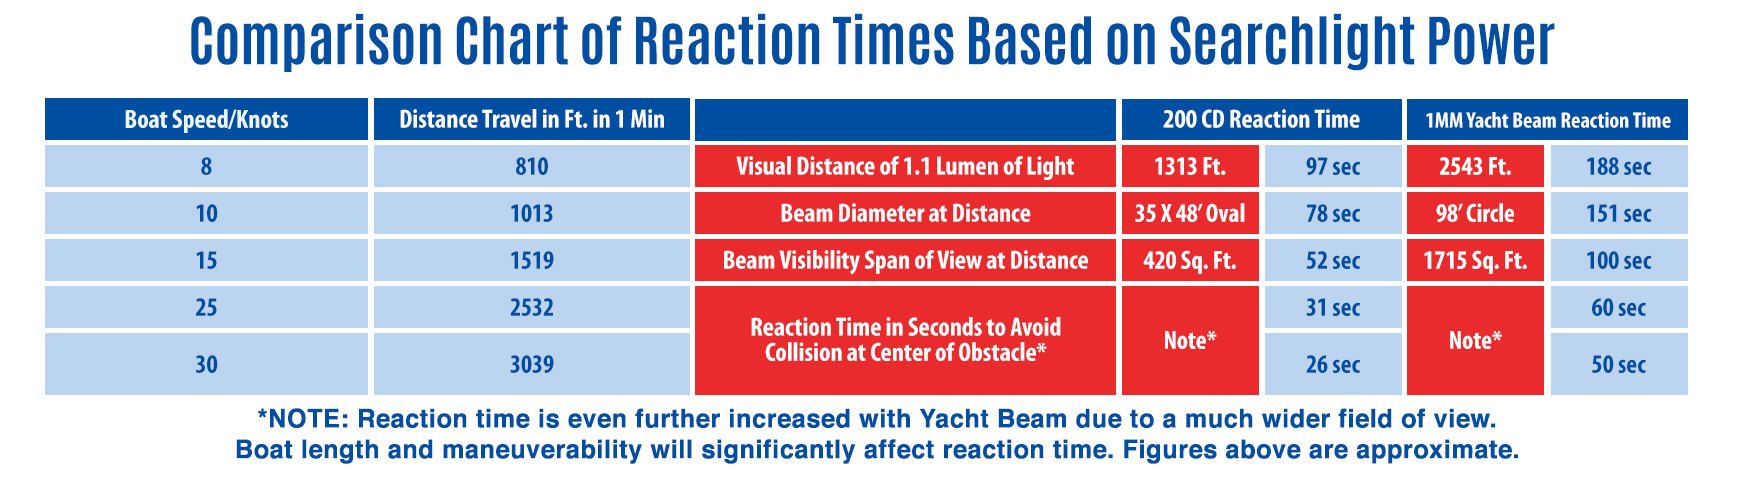 Comparison Chart of Reaction Times Based on Searchlight Power